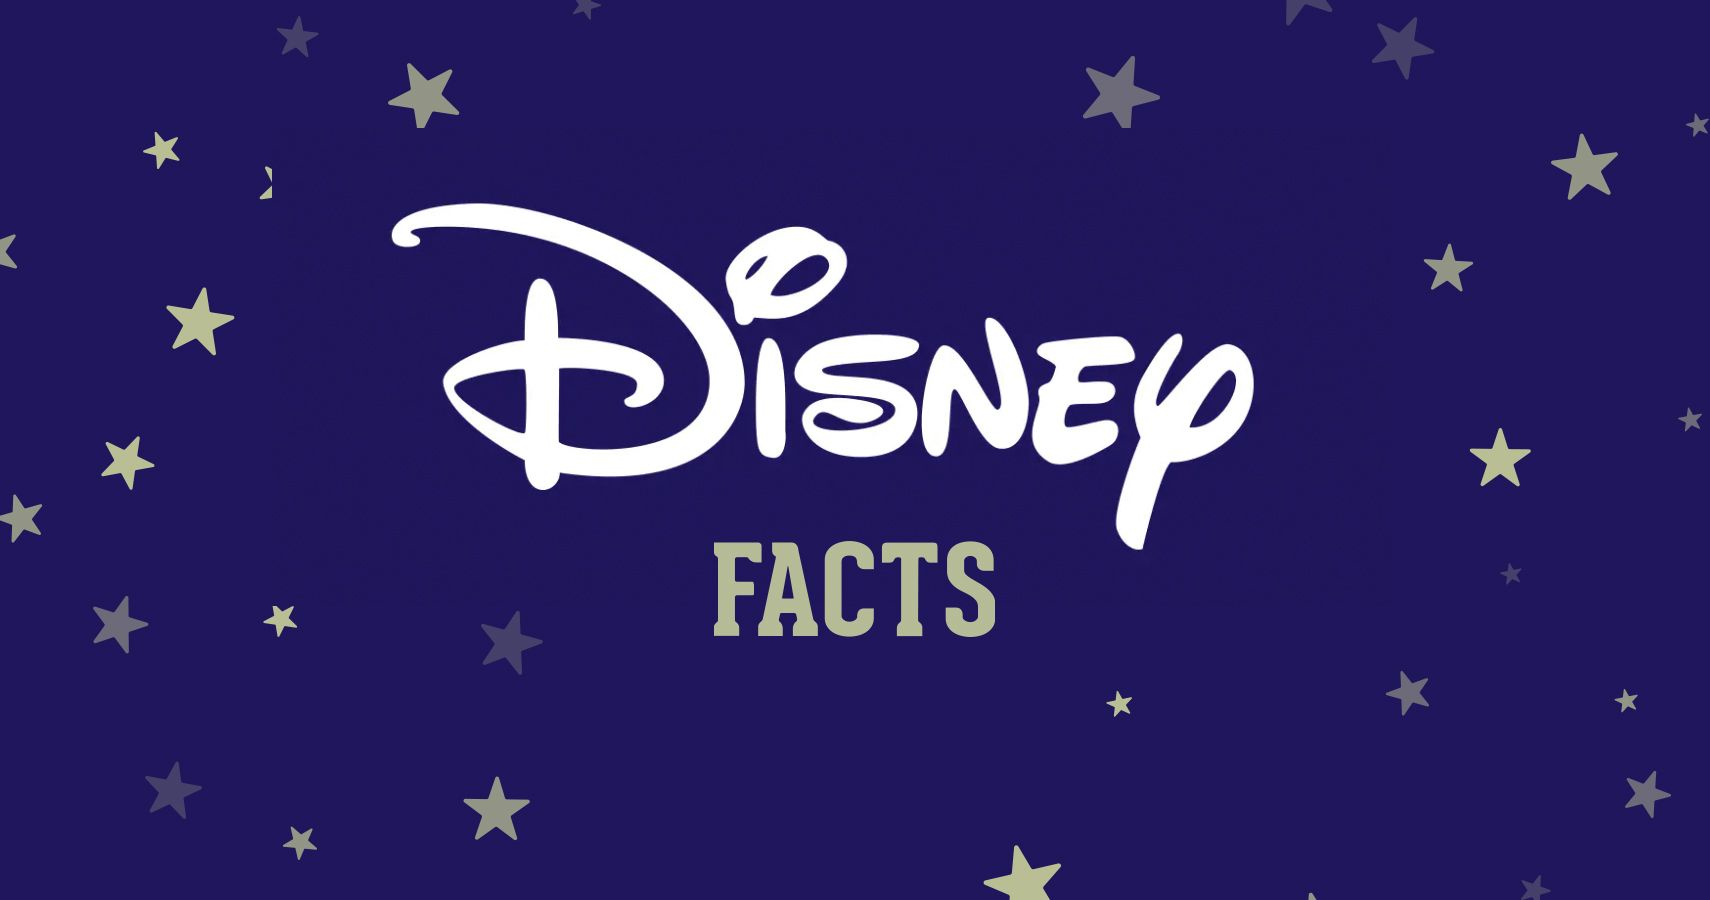 Disney Facts About Kids' Favorite Movies | Moms.com